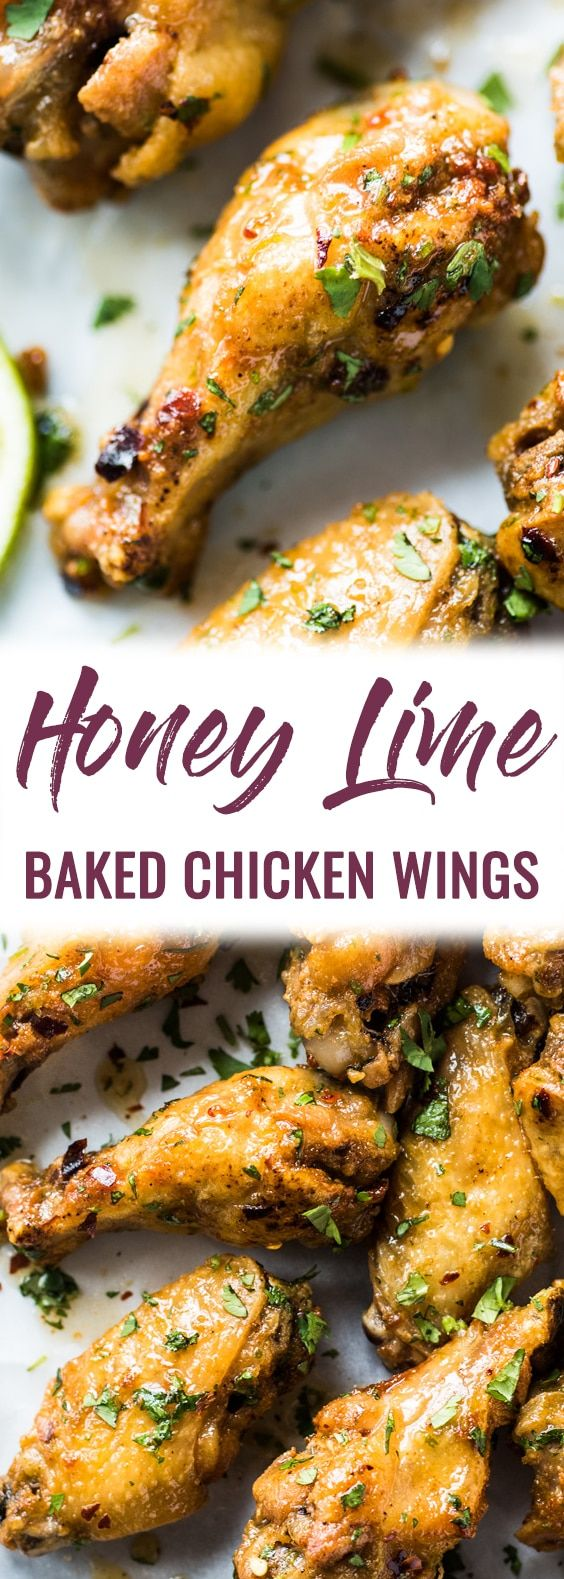 Baked Chicken Wings Recipe with Honey Lime Sauce